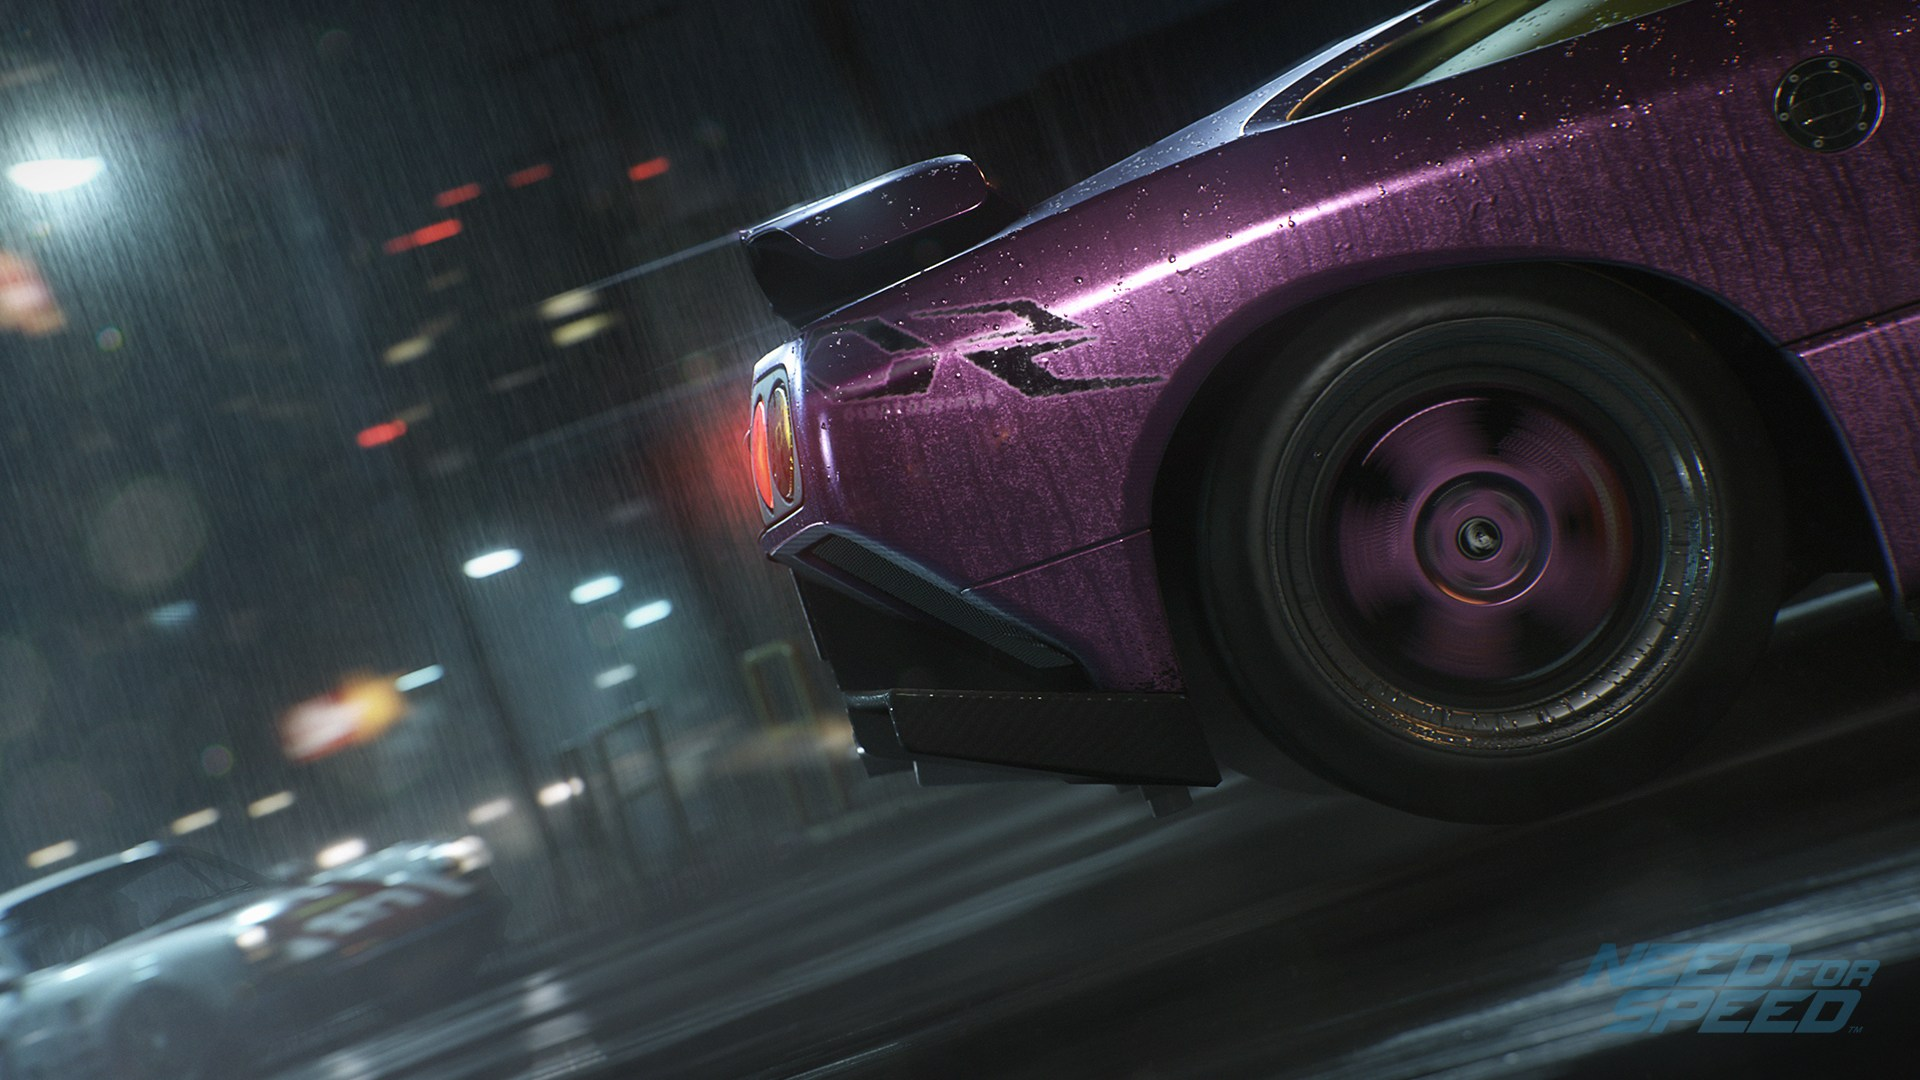 Need for Speed HD Wallpaper Background 25841 Wallur 1920x1080